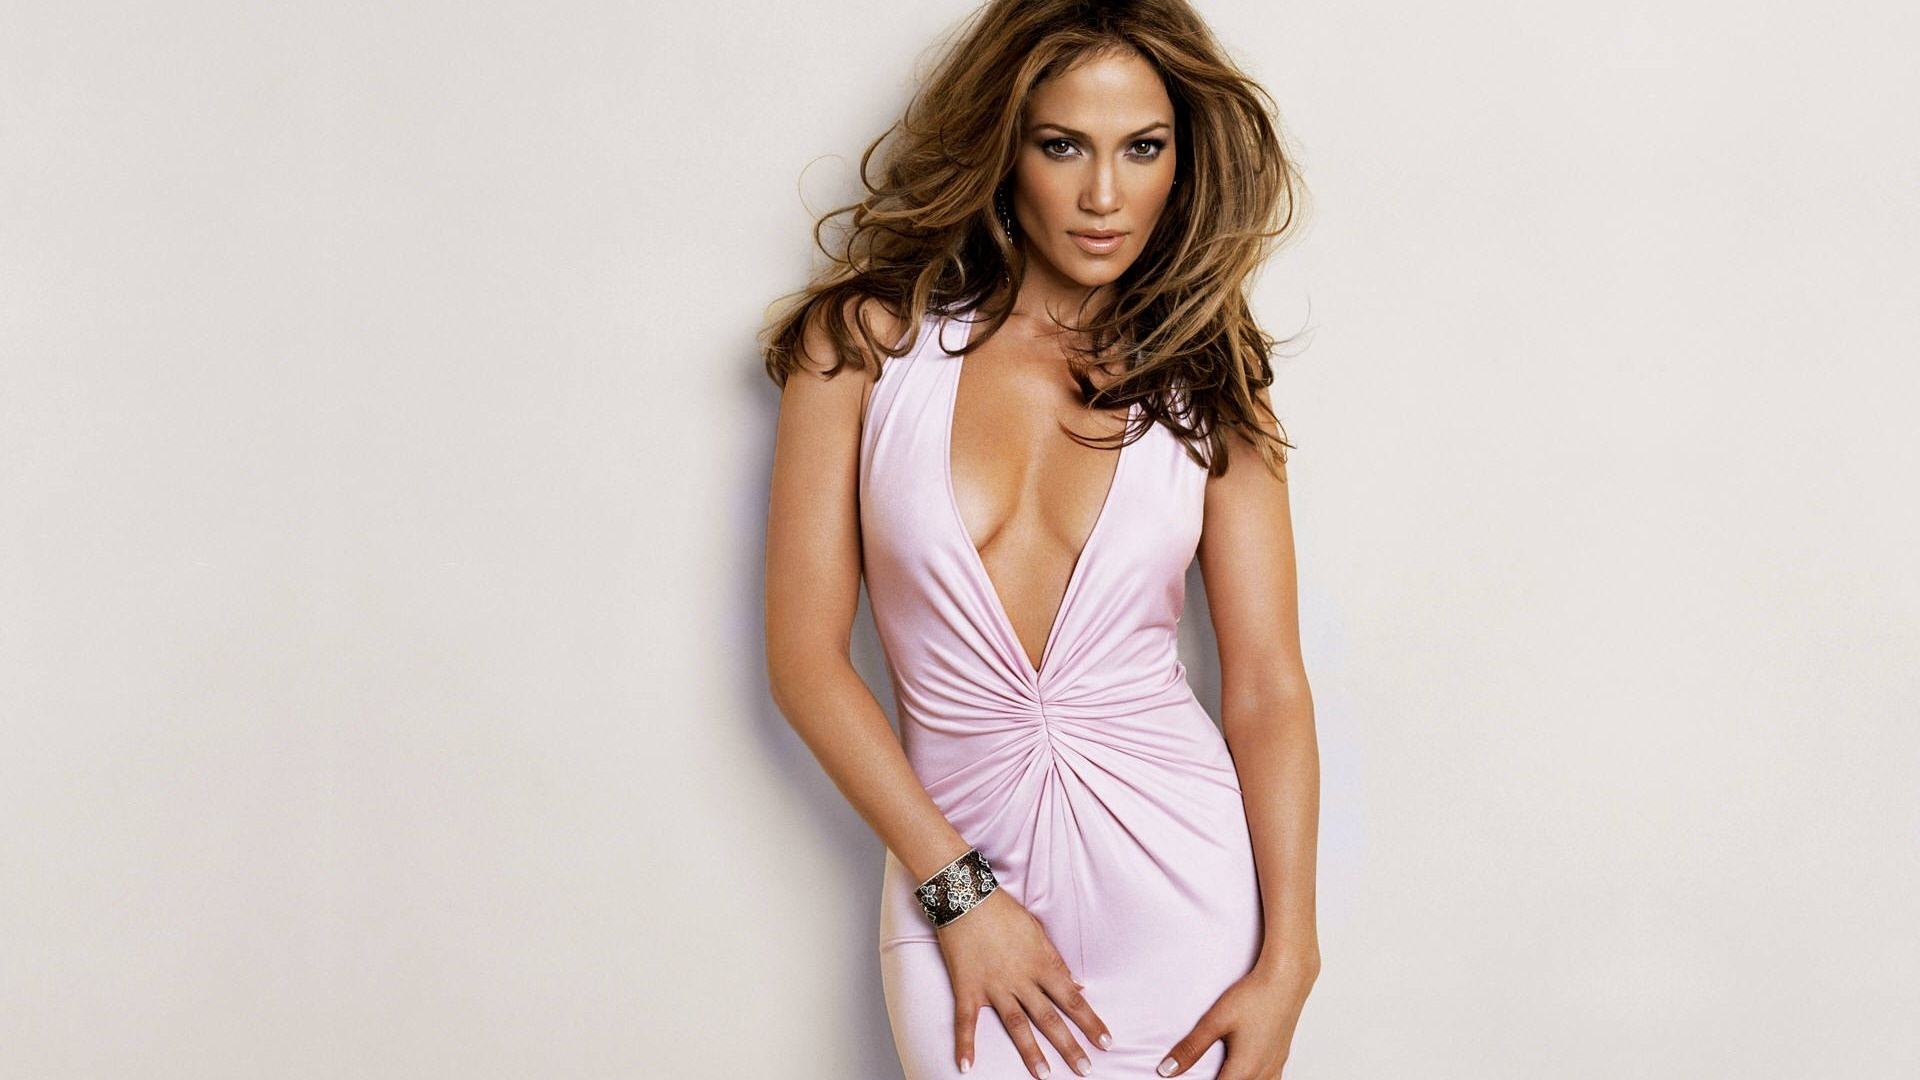 Jennifer Lopez Wallpapers High Resolution And Quality Download